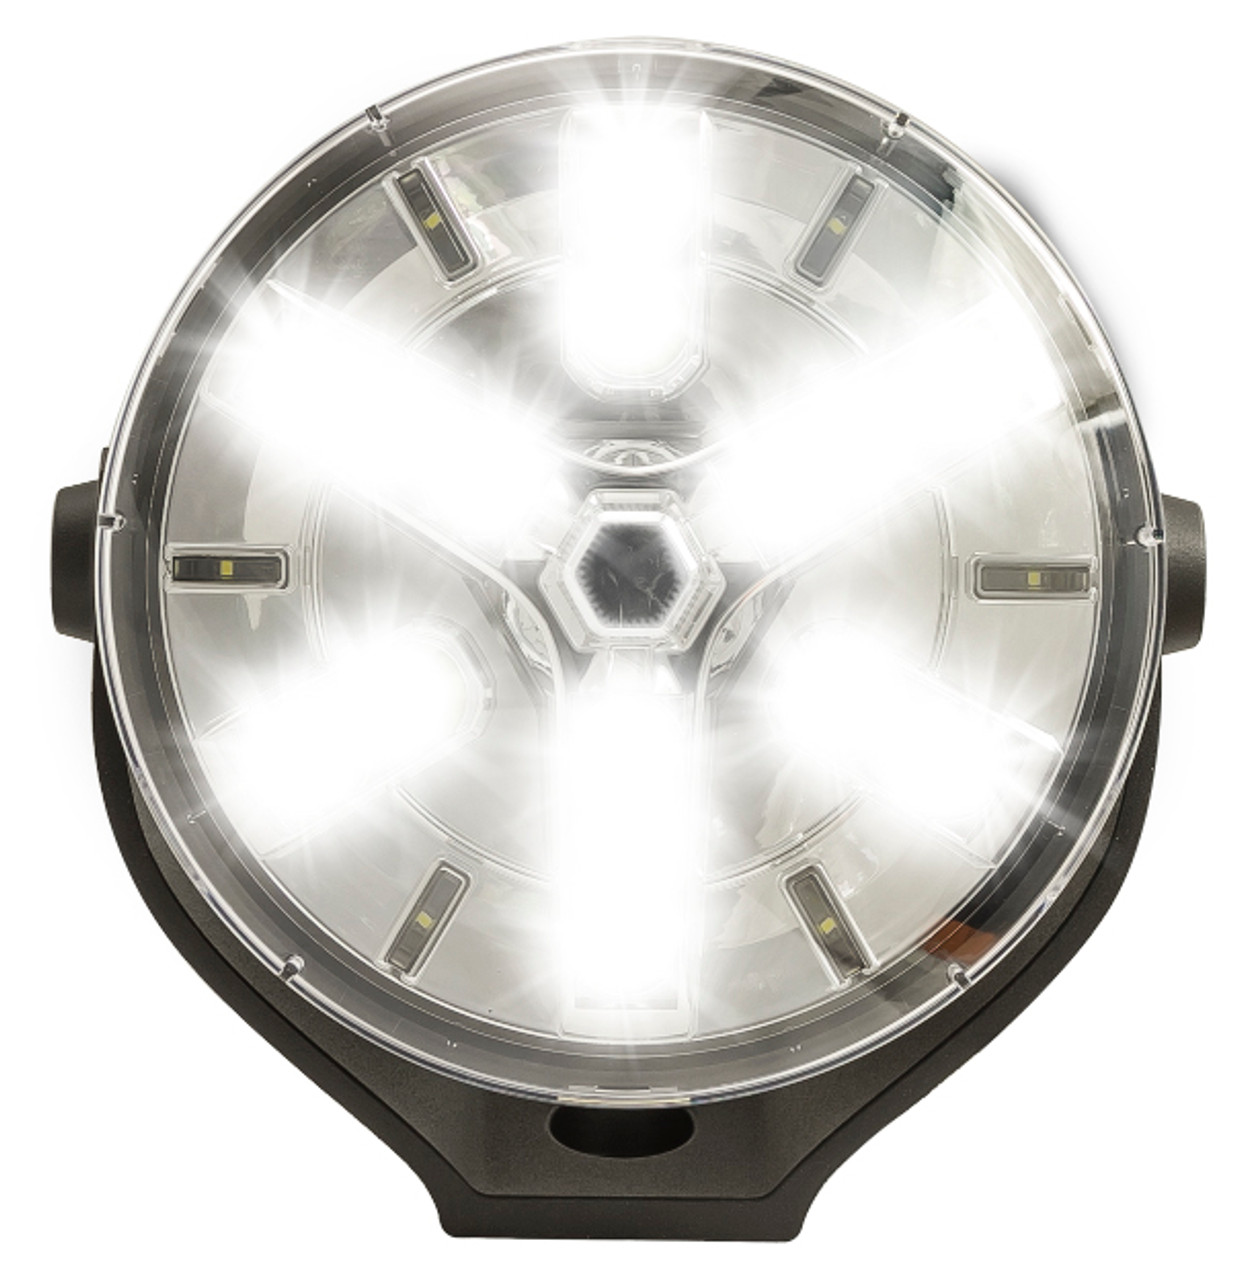 HL198 - Driving Lamp 45 Watts 7.8inch Twin Pack Multi-Volt. AL. Ultimate LED.